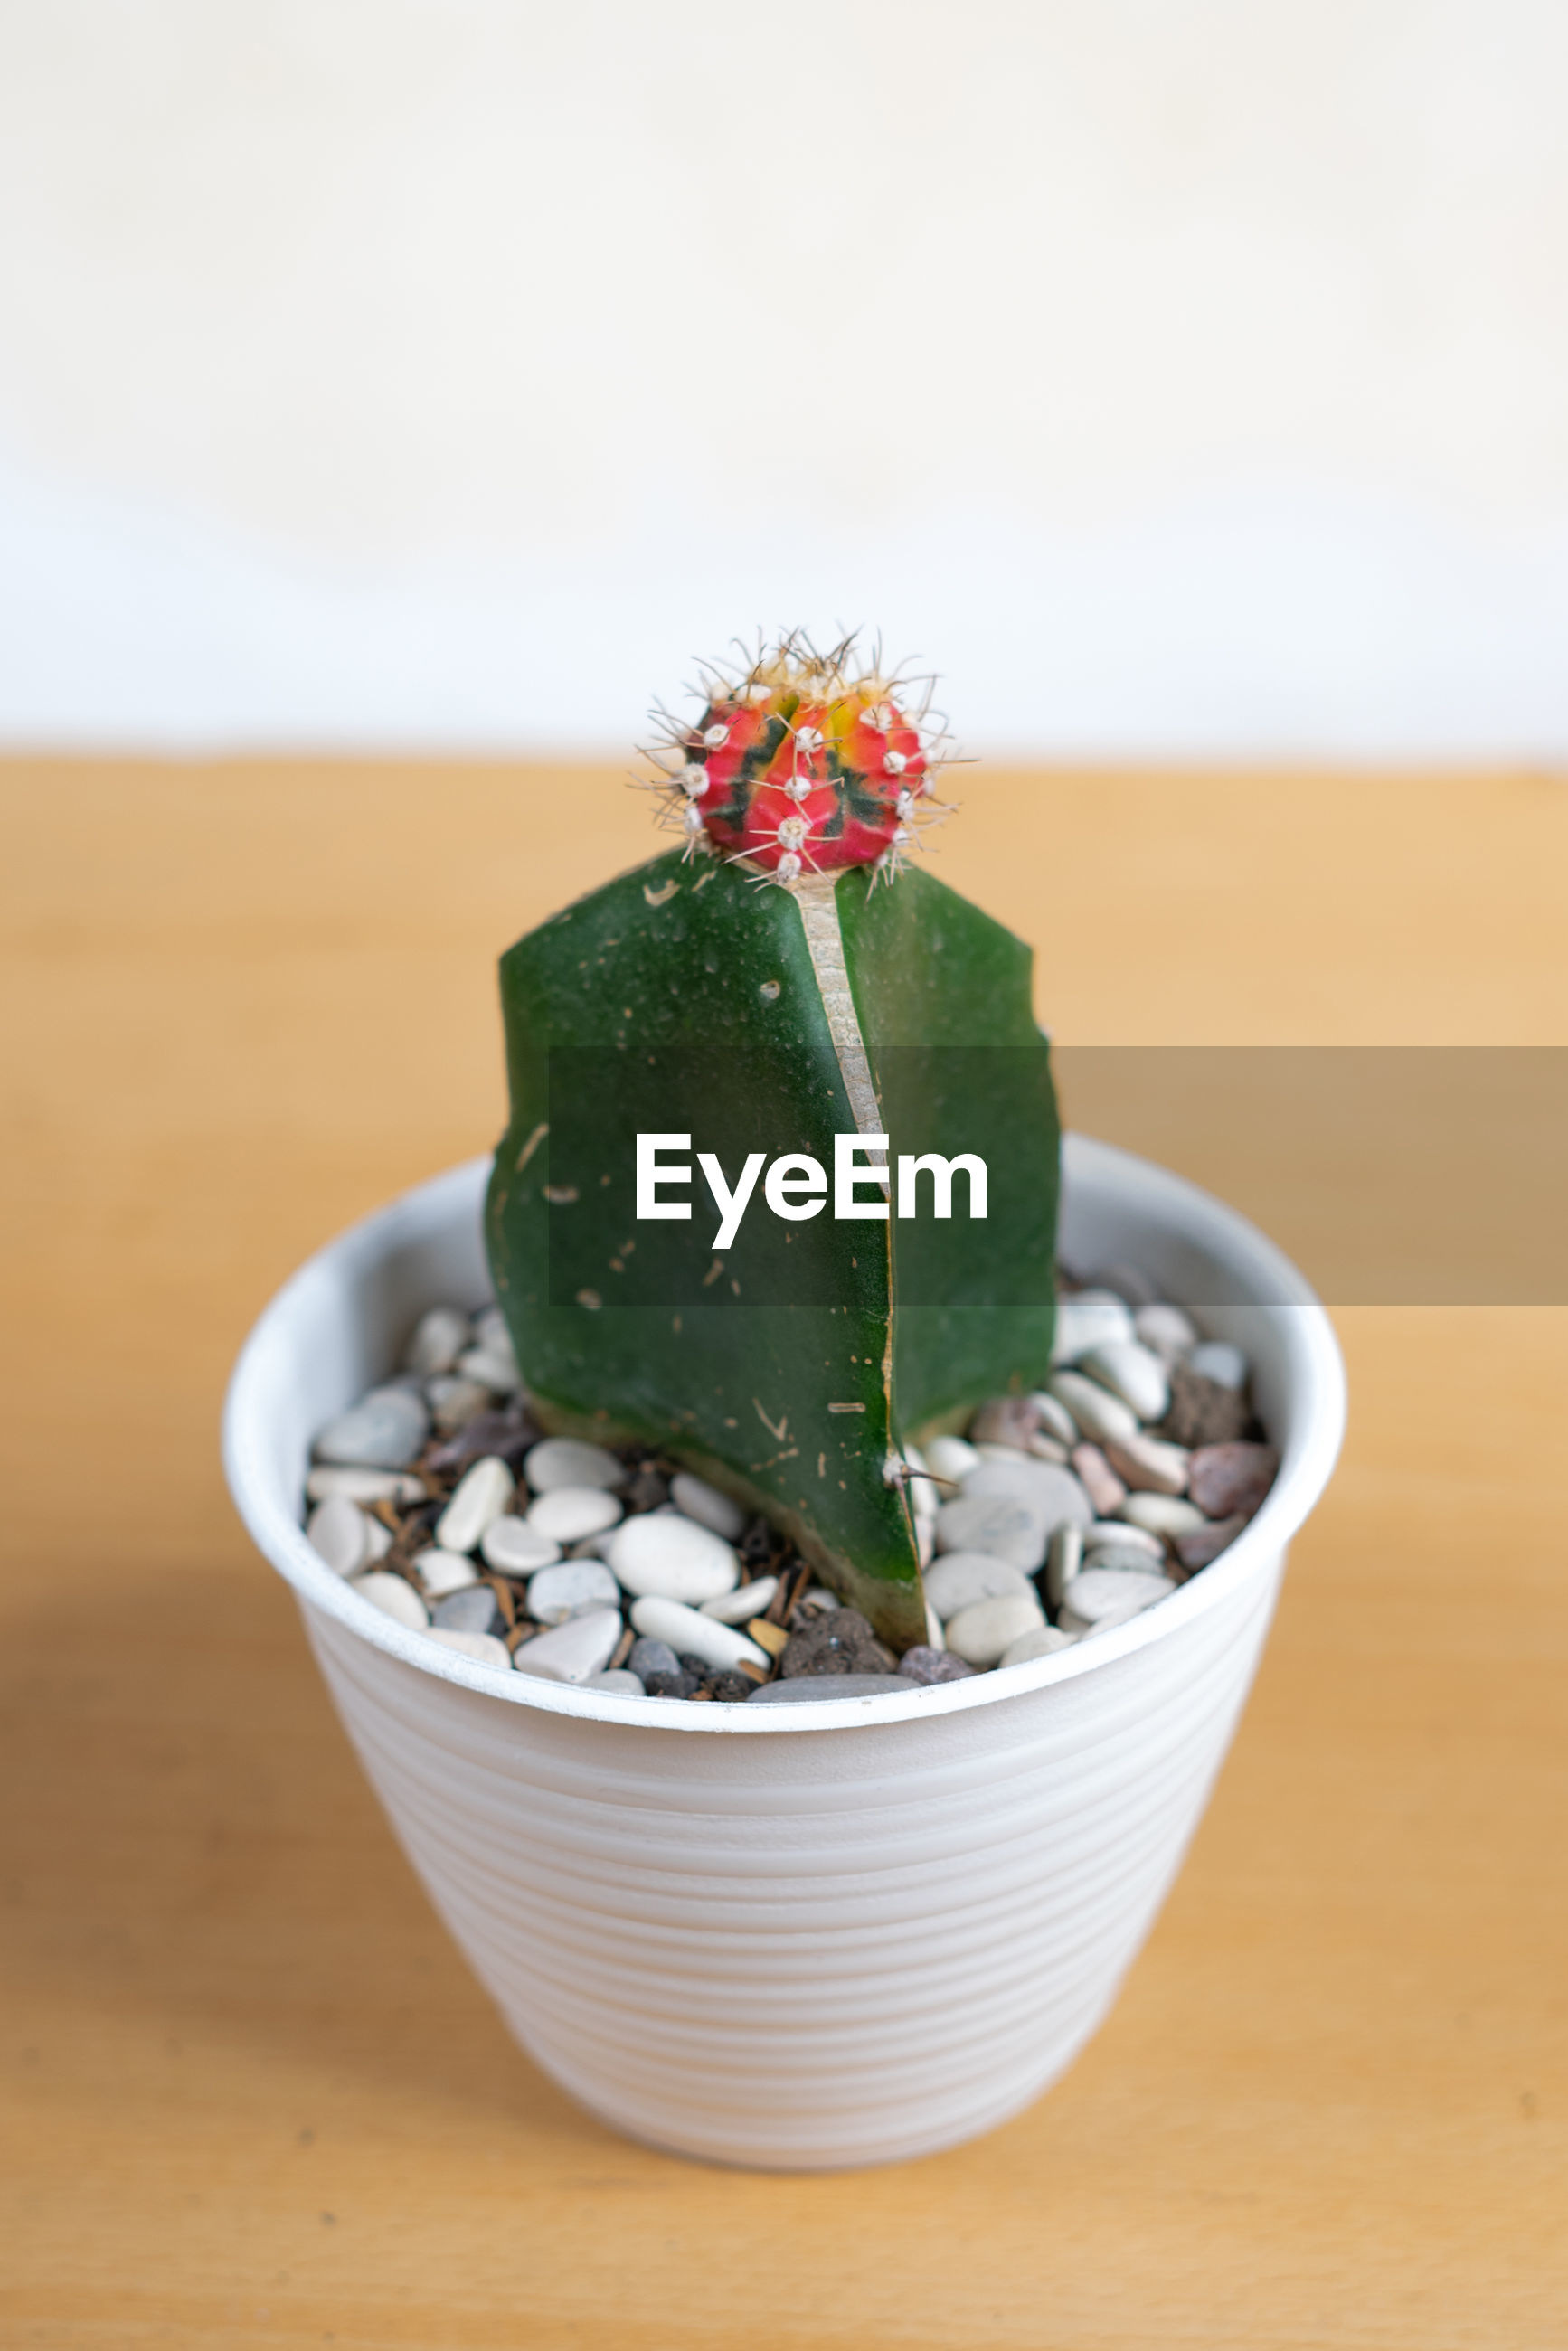 CLOSE-UP OF SUCCULENT PLANT IN BOWL